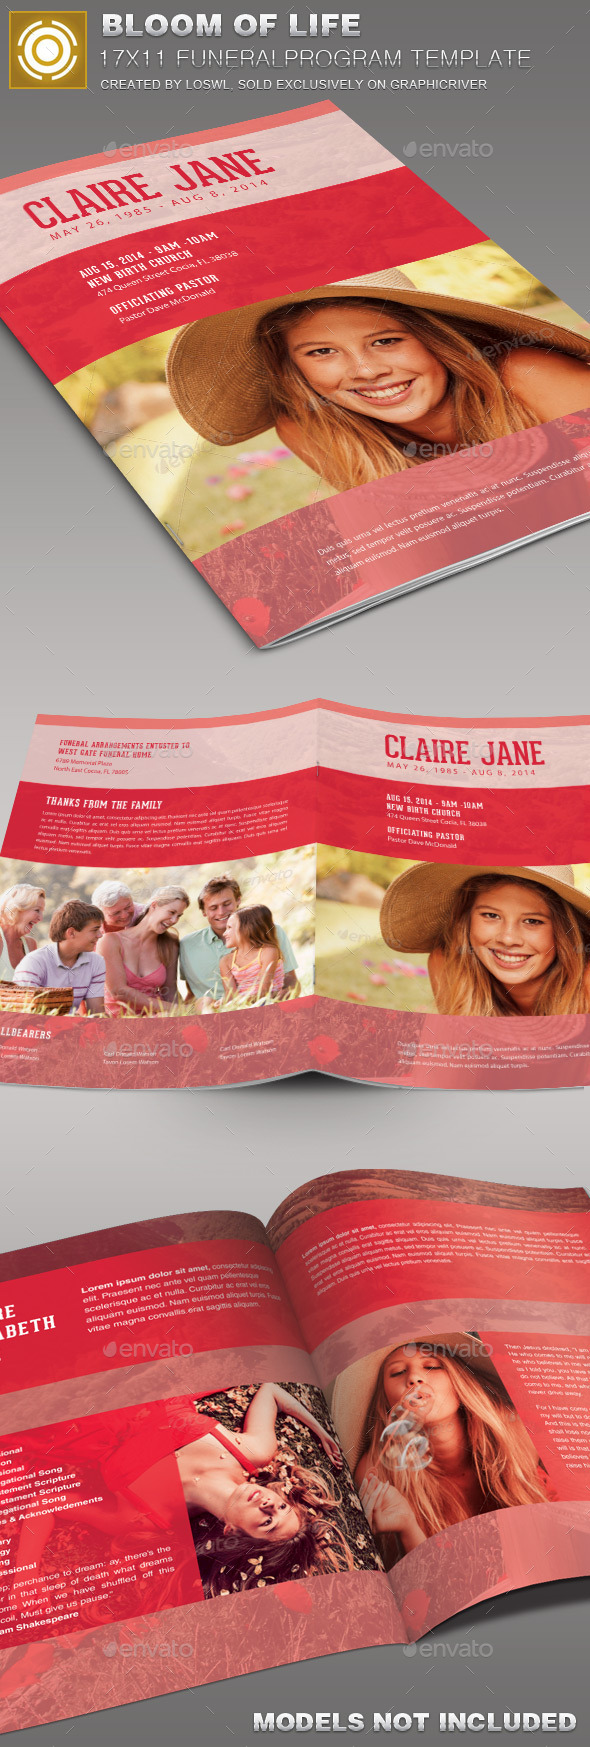 Bloom of Life Funeral Program Template 007 - Informational Brochures